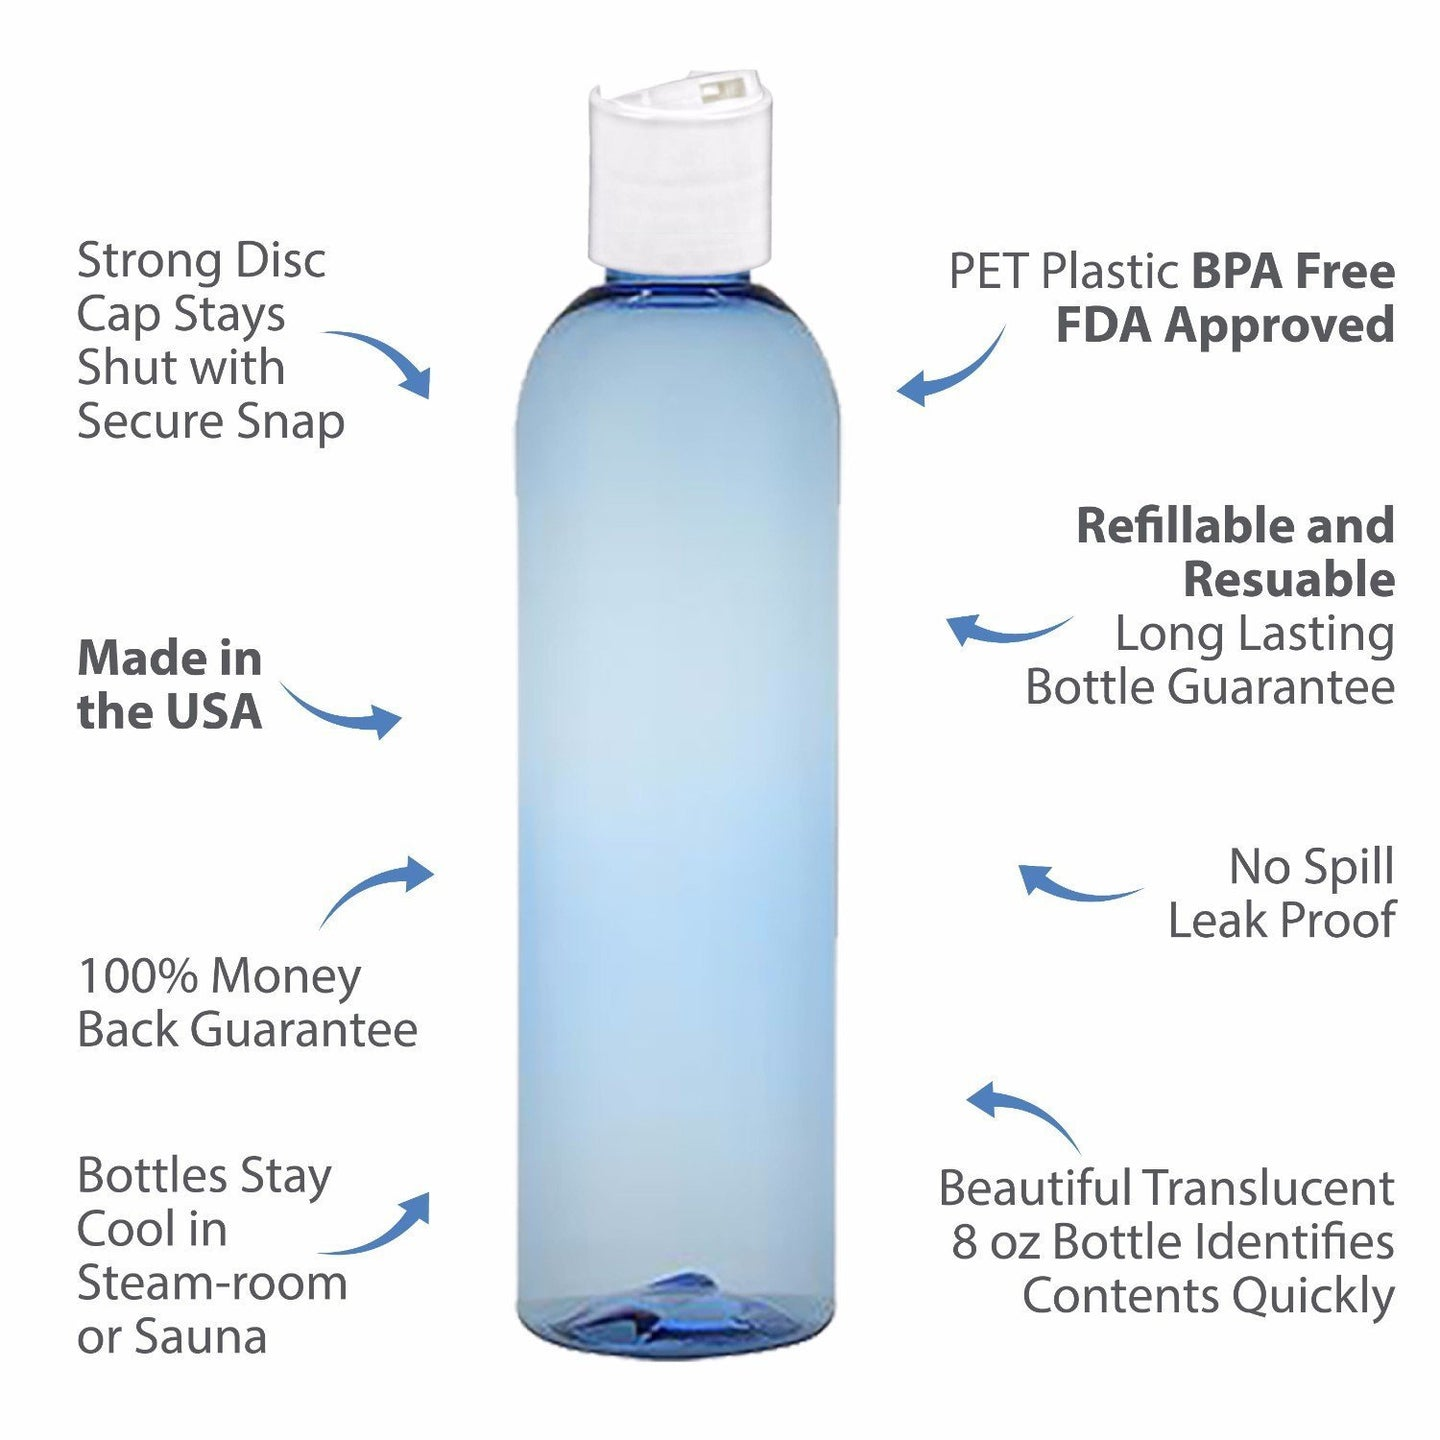 MoYo Natural Labs 8 oz Travel Bottles, Empty Travel Containers with Disc Caps, BPA Free PET Plastic Squeezable Toiletry/Cosmetic Bottles (Pack of 50, Light Blue)